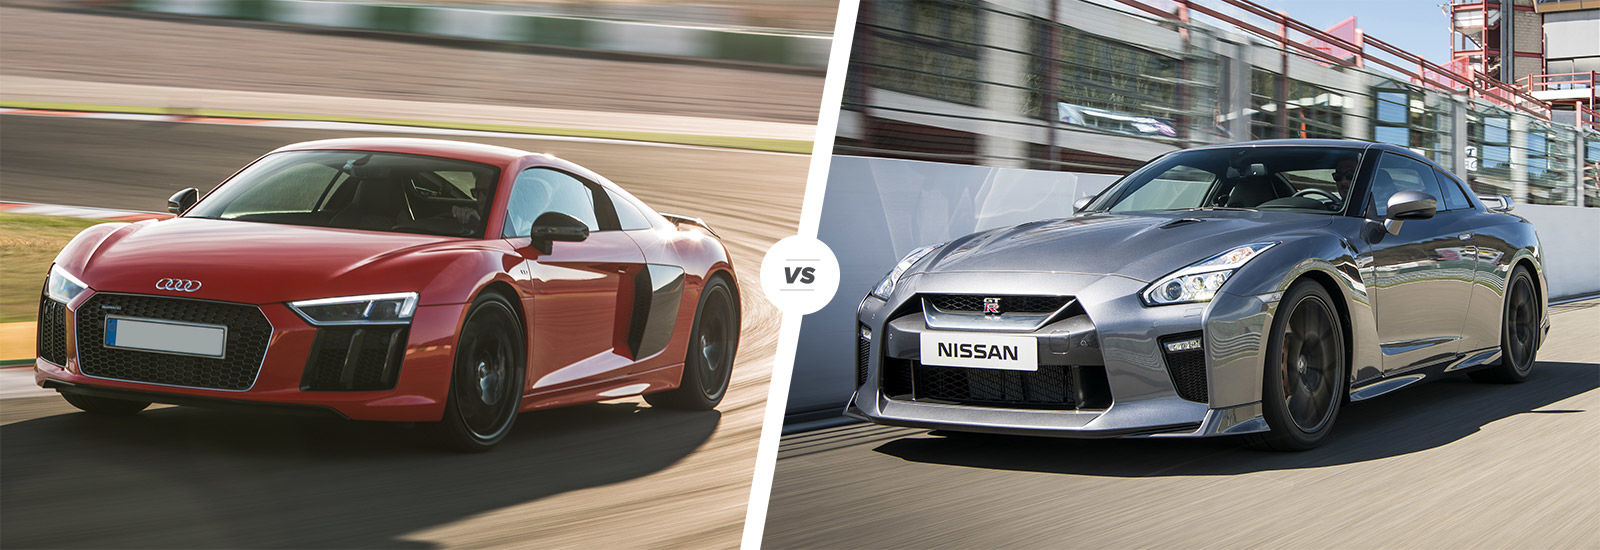 Audi R8 Vs Nissan GT R Supercar Comparison